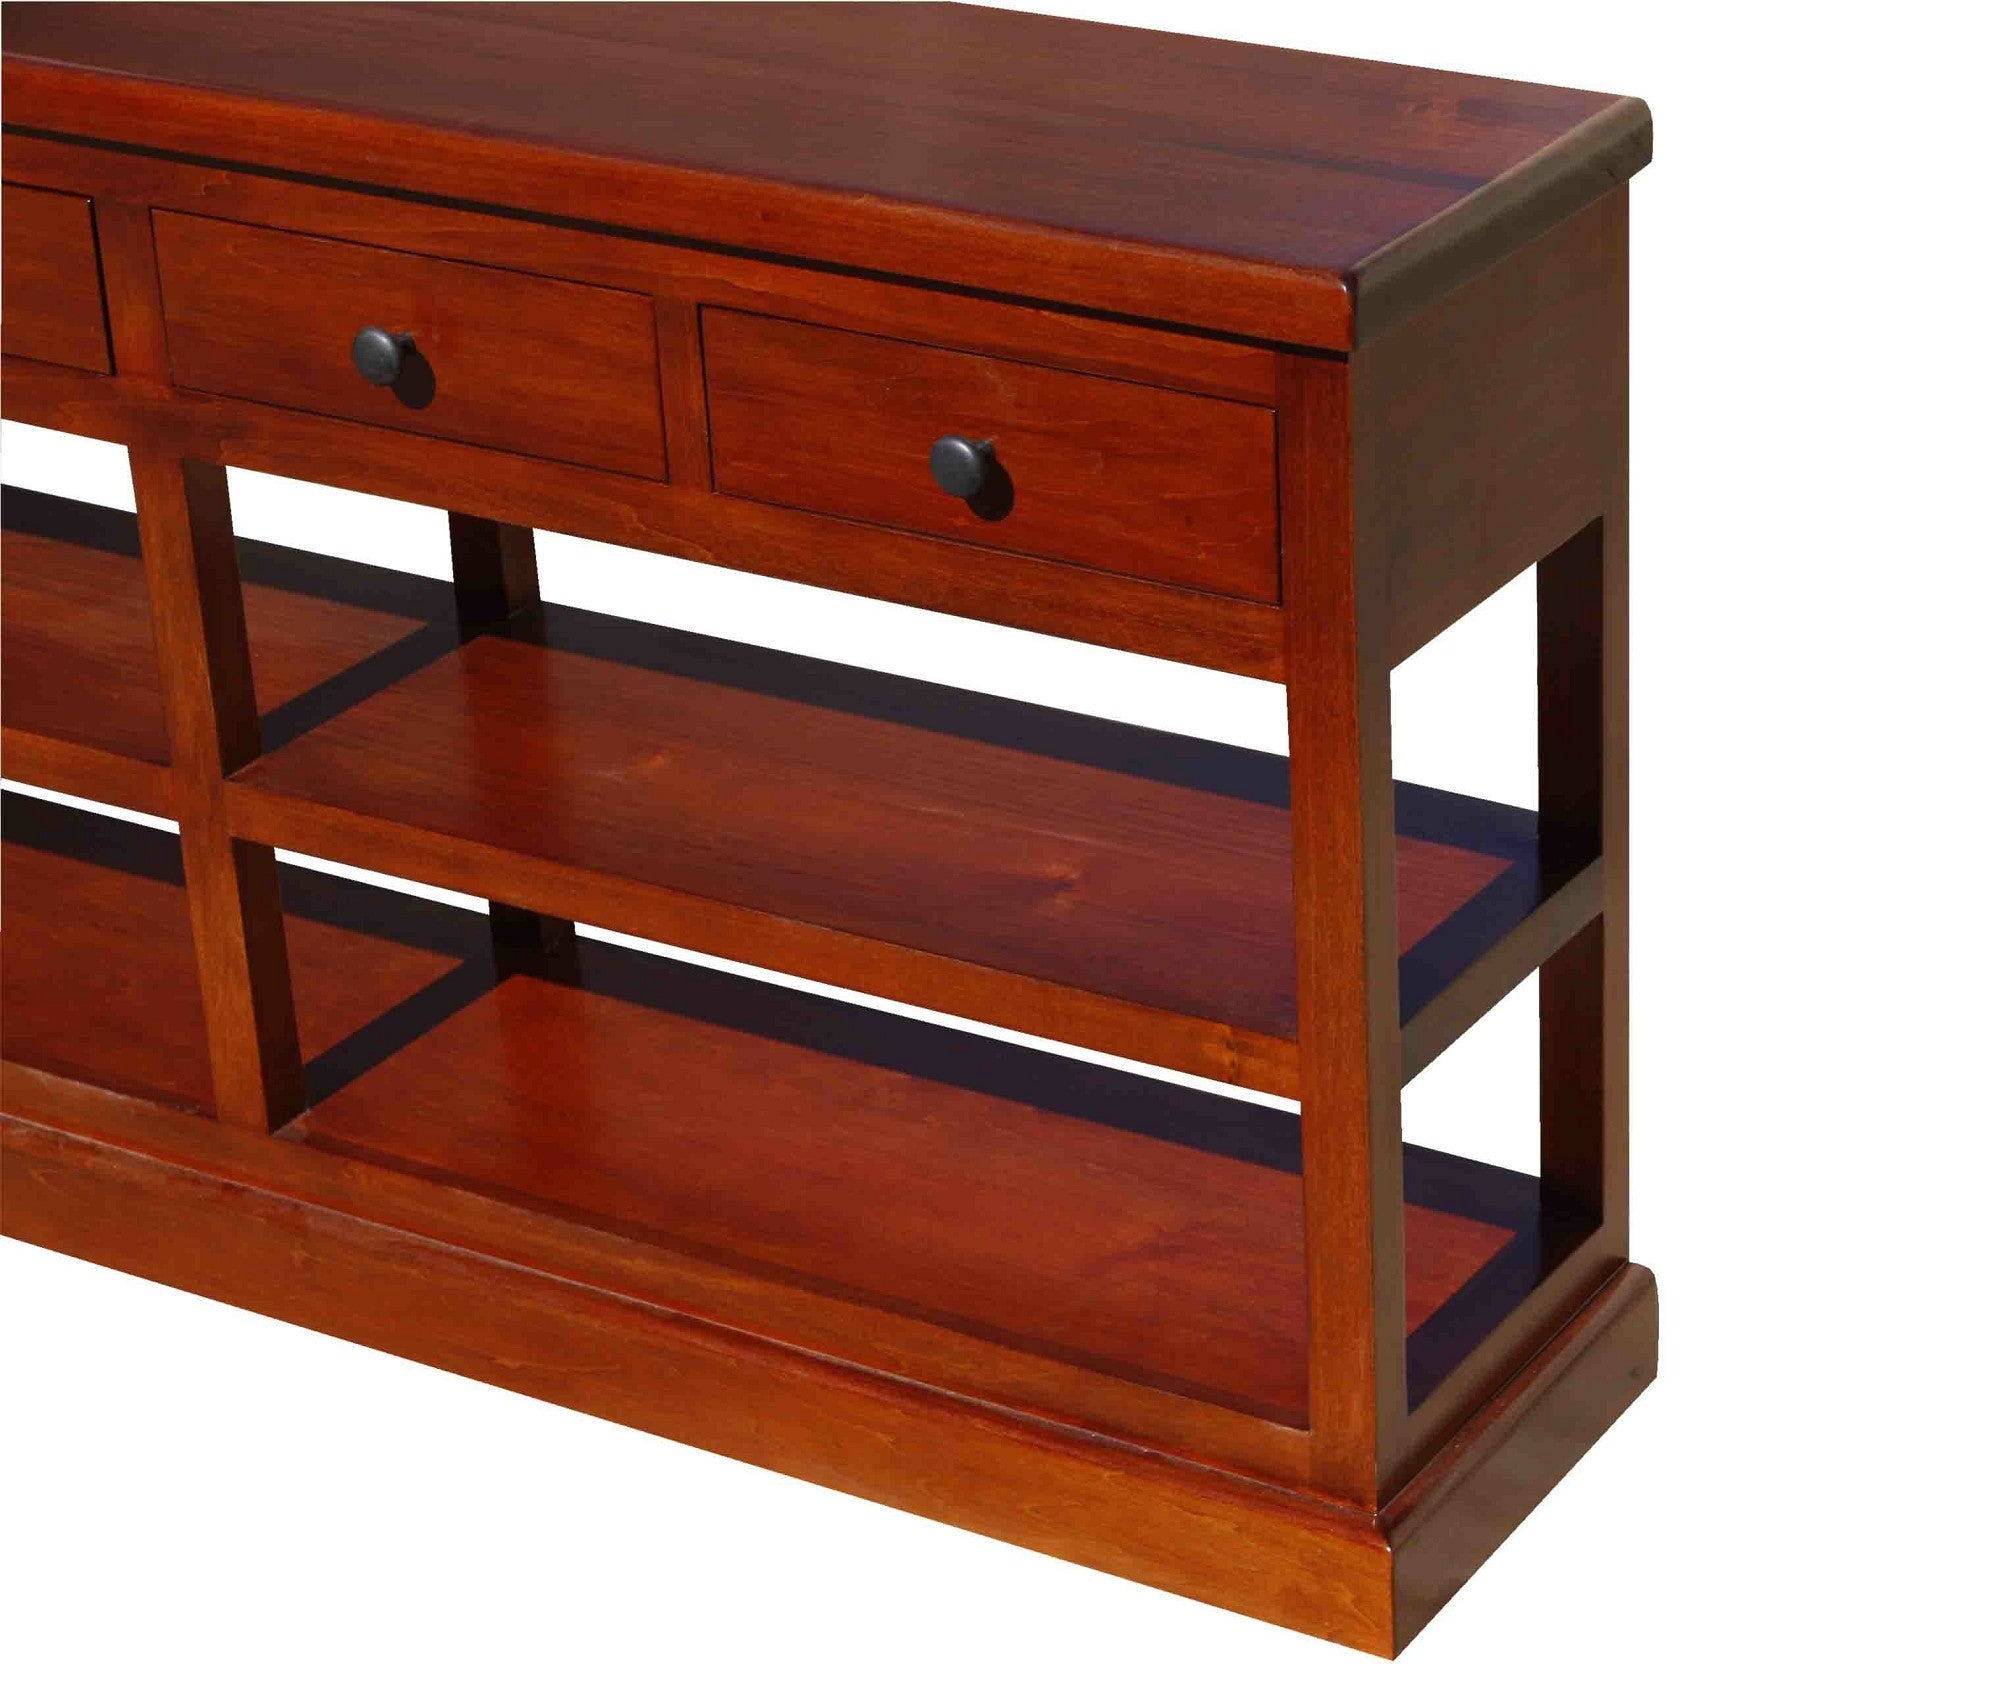 furniture custommade and parkinson bookcases com by gregory bookshelf custom unfinished finished gallery